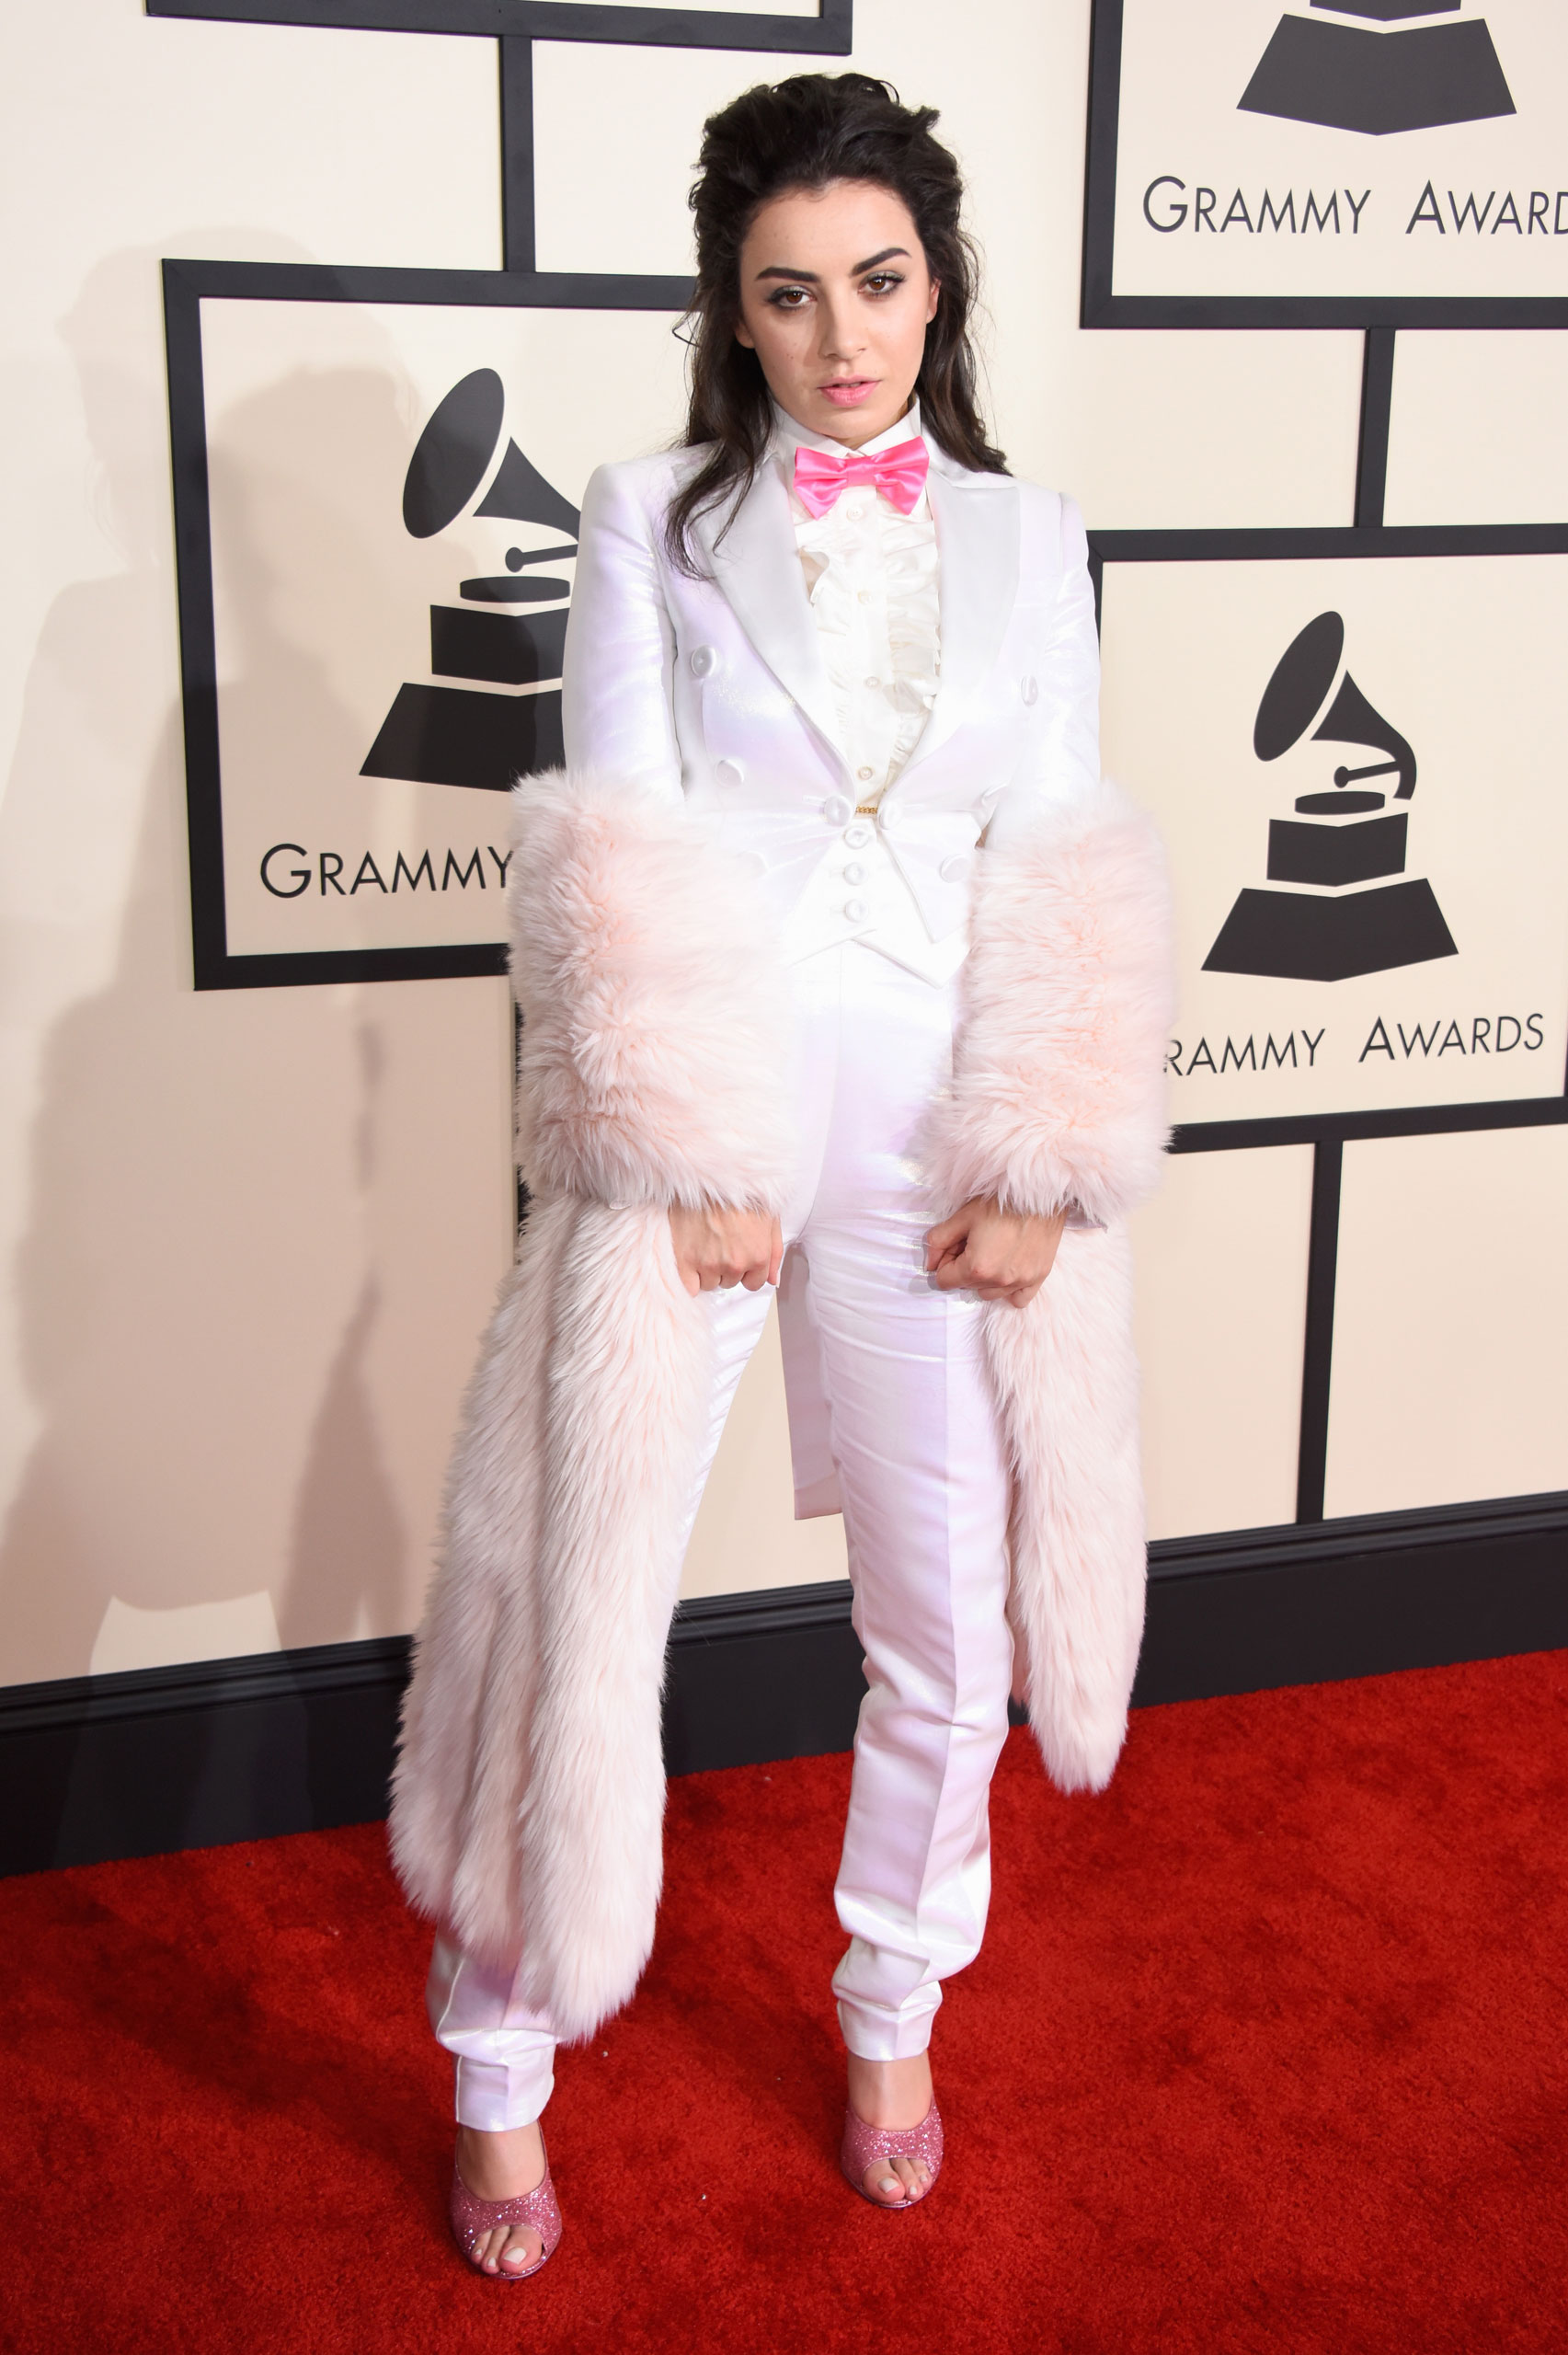 Charli XCX attends the 57th Annual Grammy Awards at the Staples Center on Feb. 8, 2015 in Los Angeles, Calif.